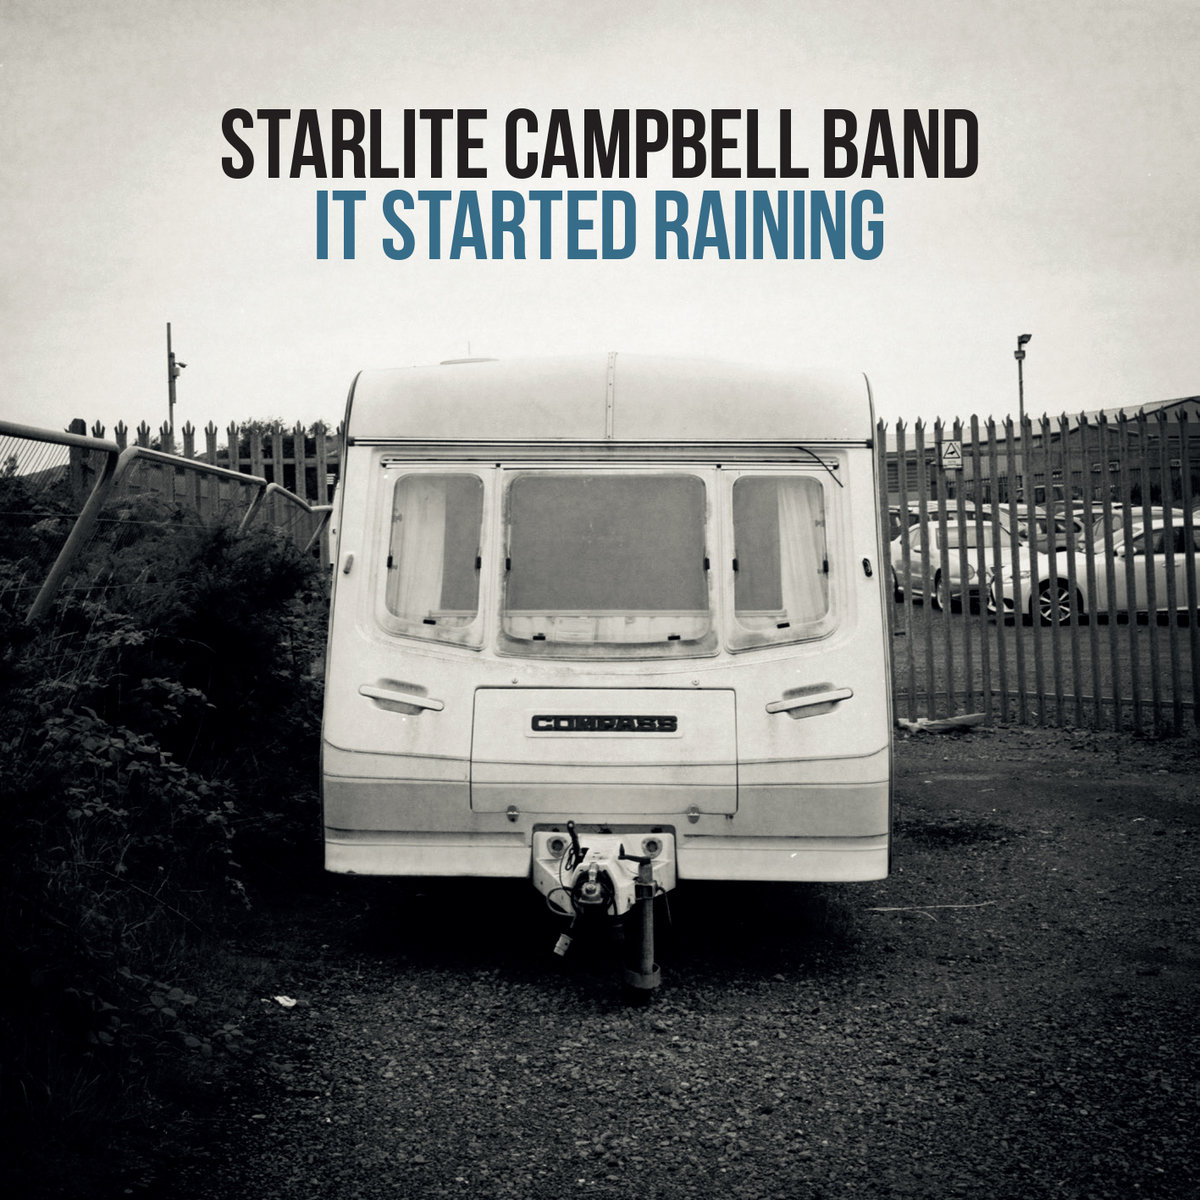 It Started Raining by Starlite Campbell Band